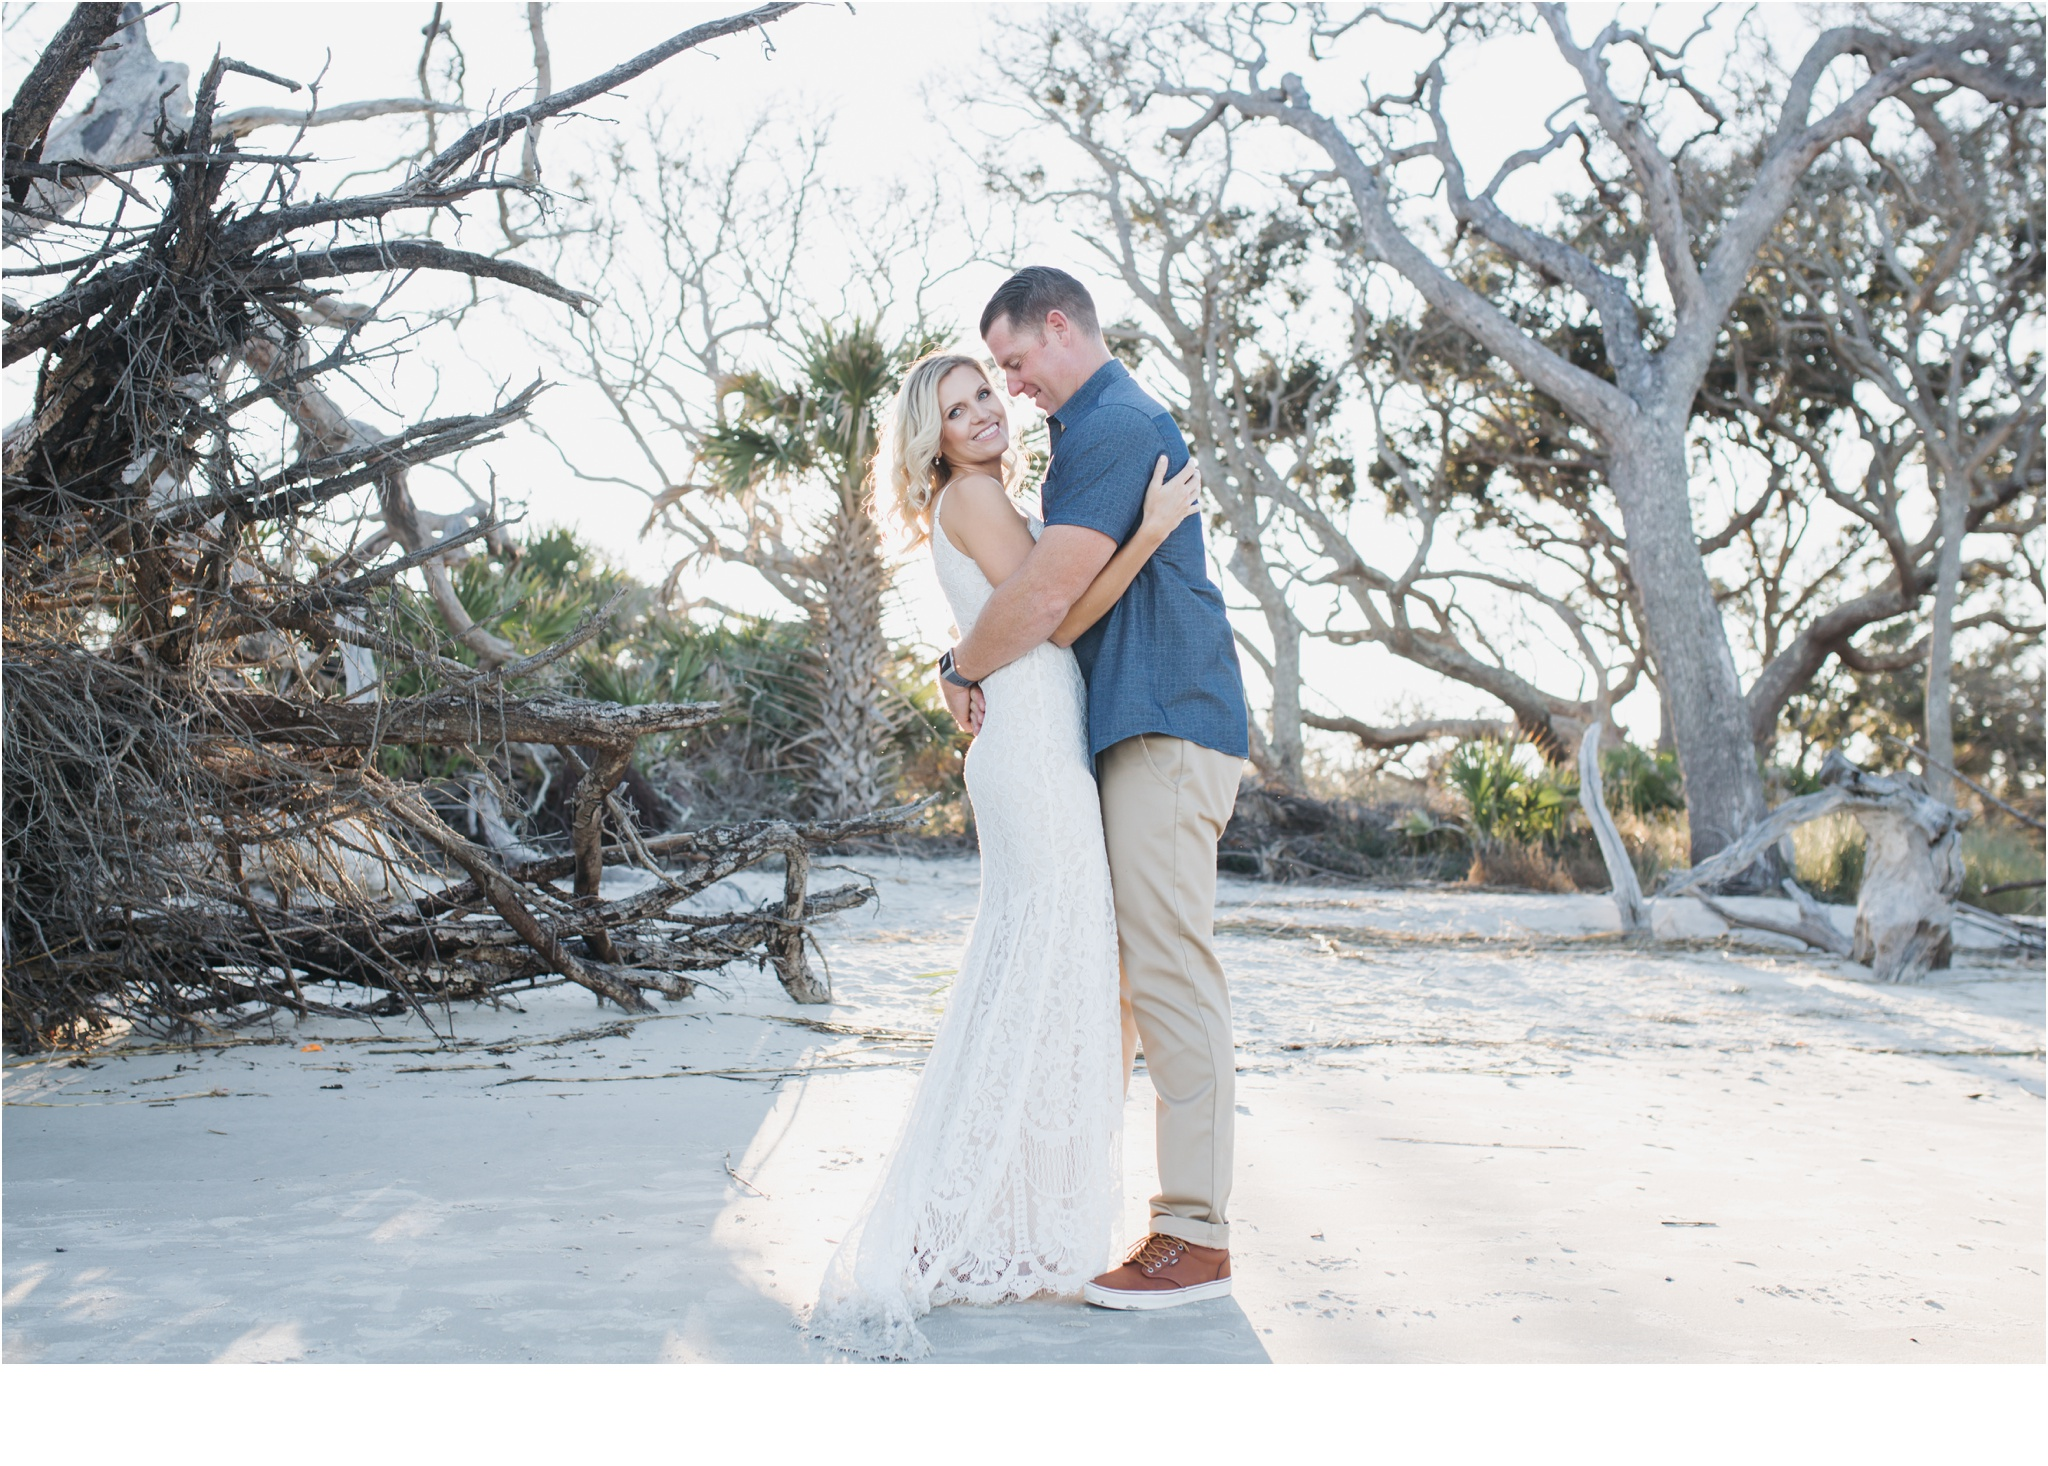 Rainey_Gregg_Photography_St._Simons_Island_Georgia_California_Wedding_Portrait_Photography_1585.jpg